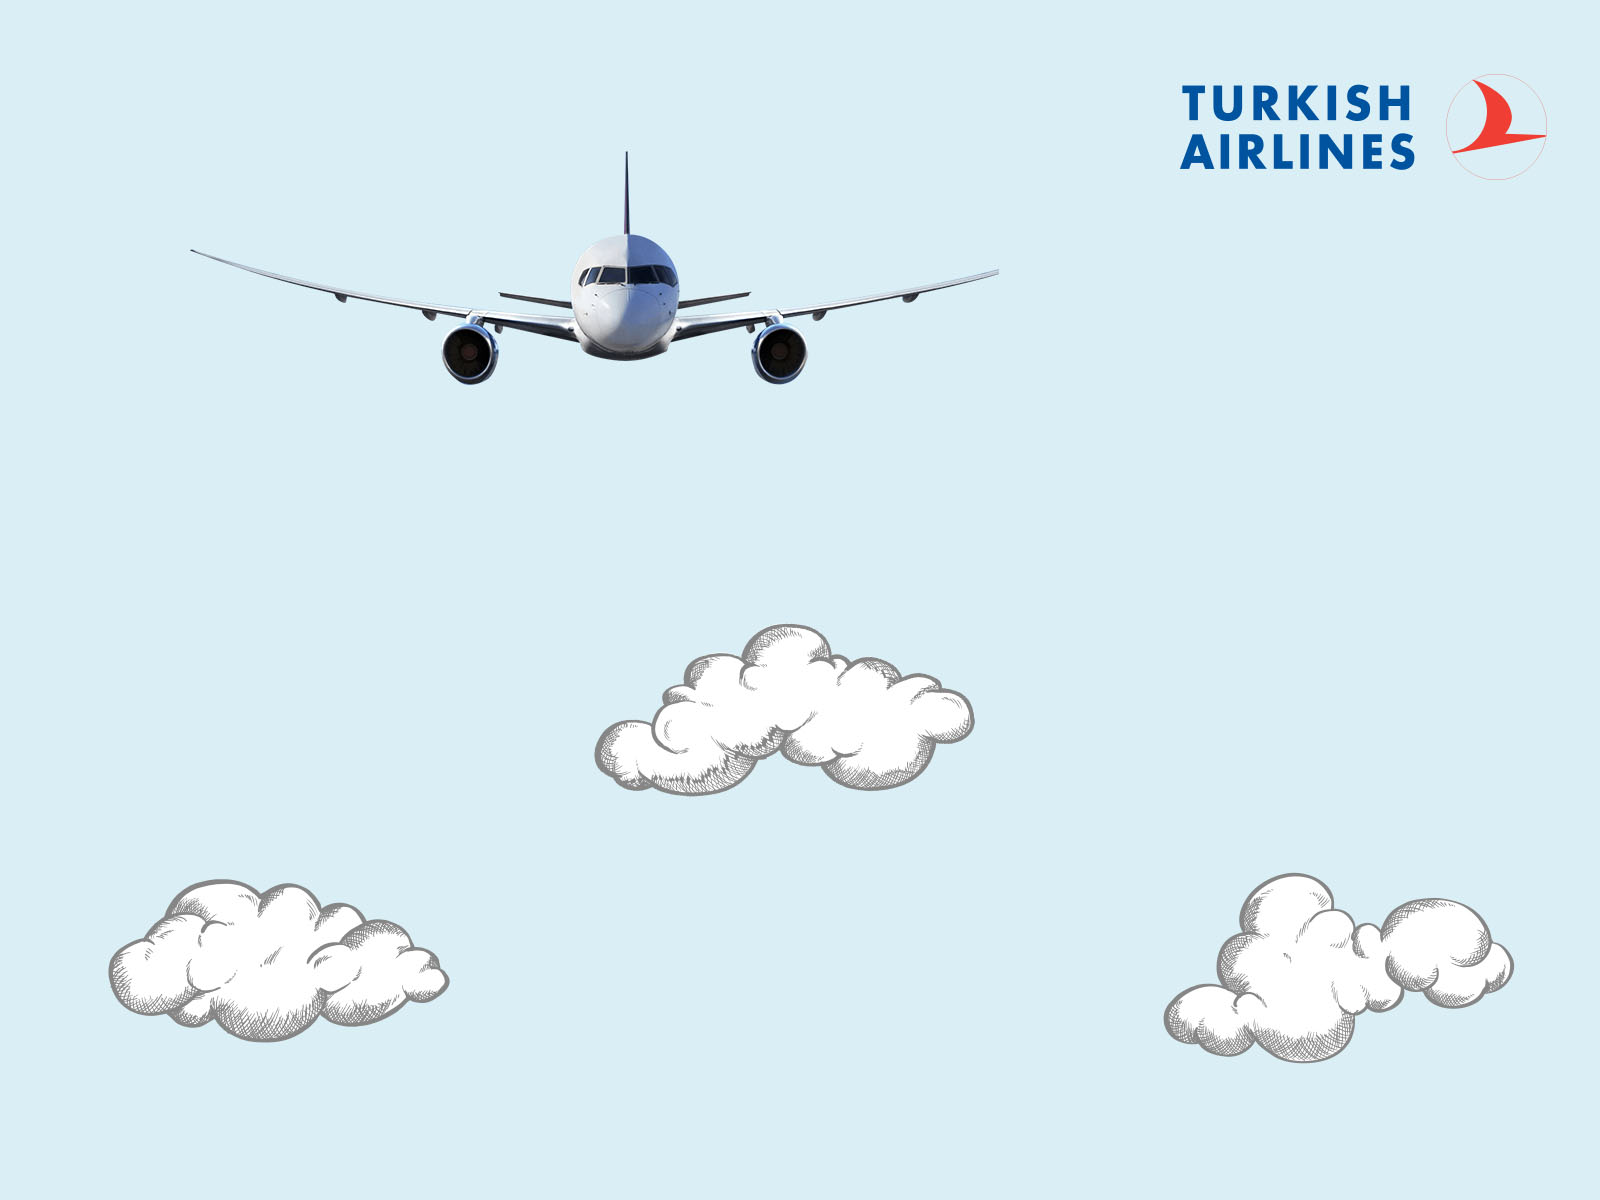 Airline powerpoint templates choice image templates example free turkish airlines ppt backgrounds blue transportation white turkish airlines powerpoint themes alramifo choice image toneelgroepblik Gallery